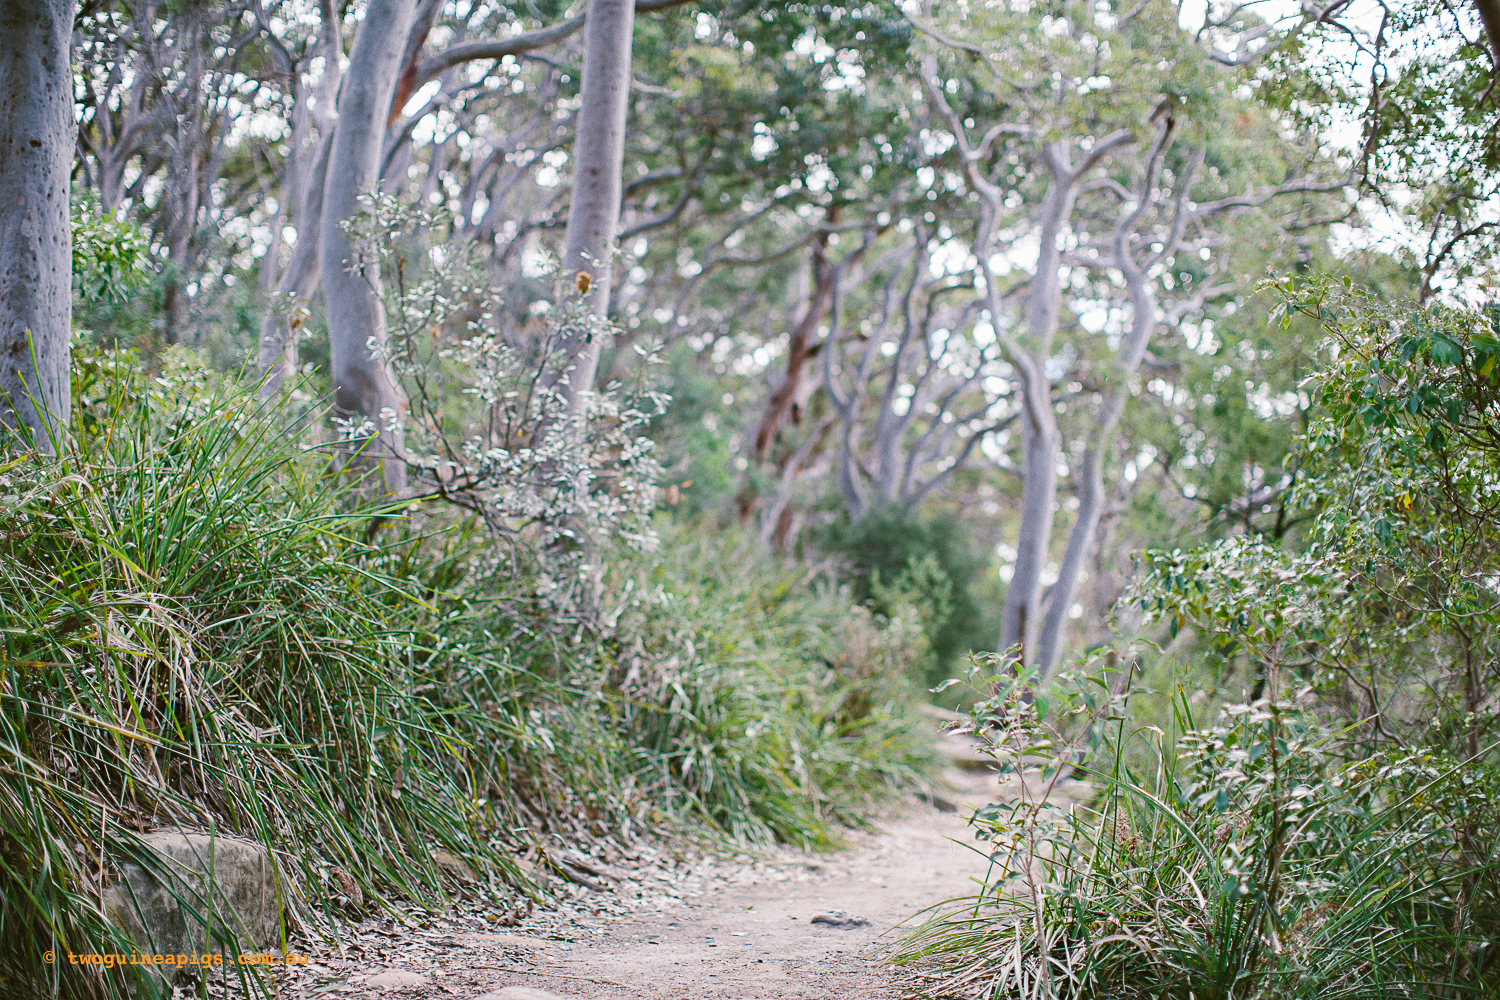 twoguineapigs_pet_photography_berry_island_reserve_wollstonecraft_location_scout_1500-35.jpg